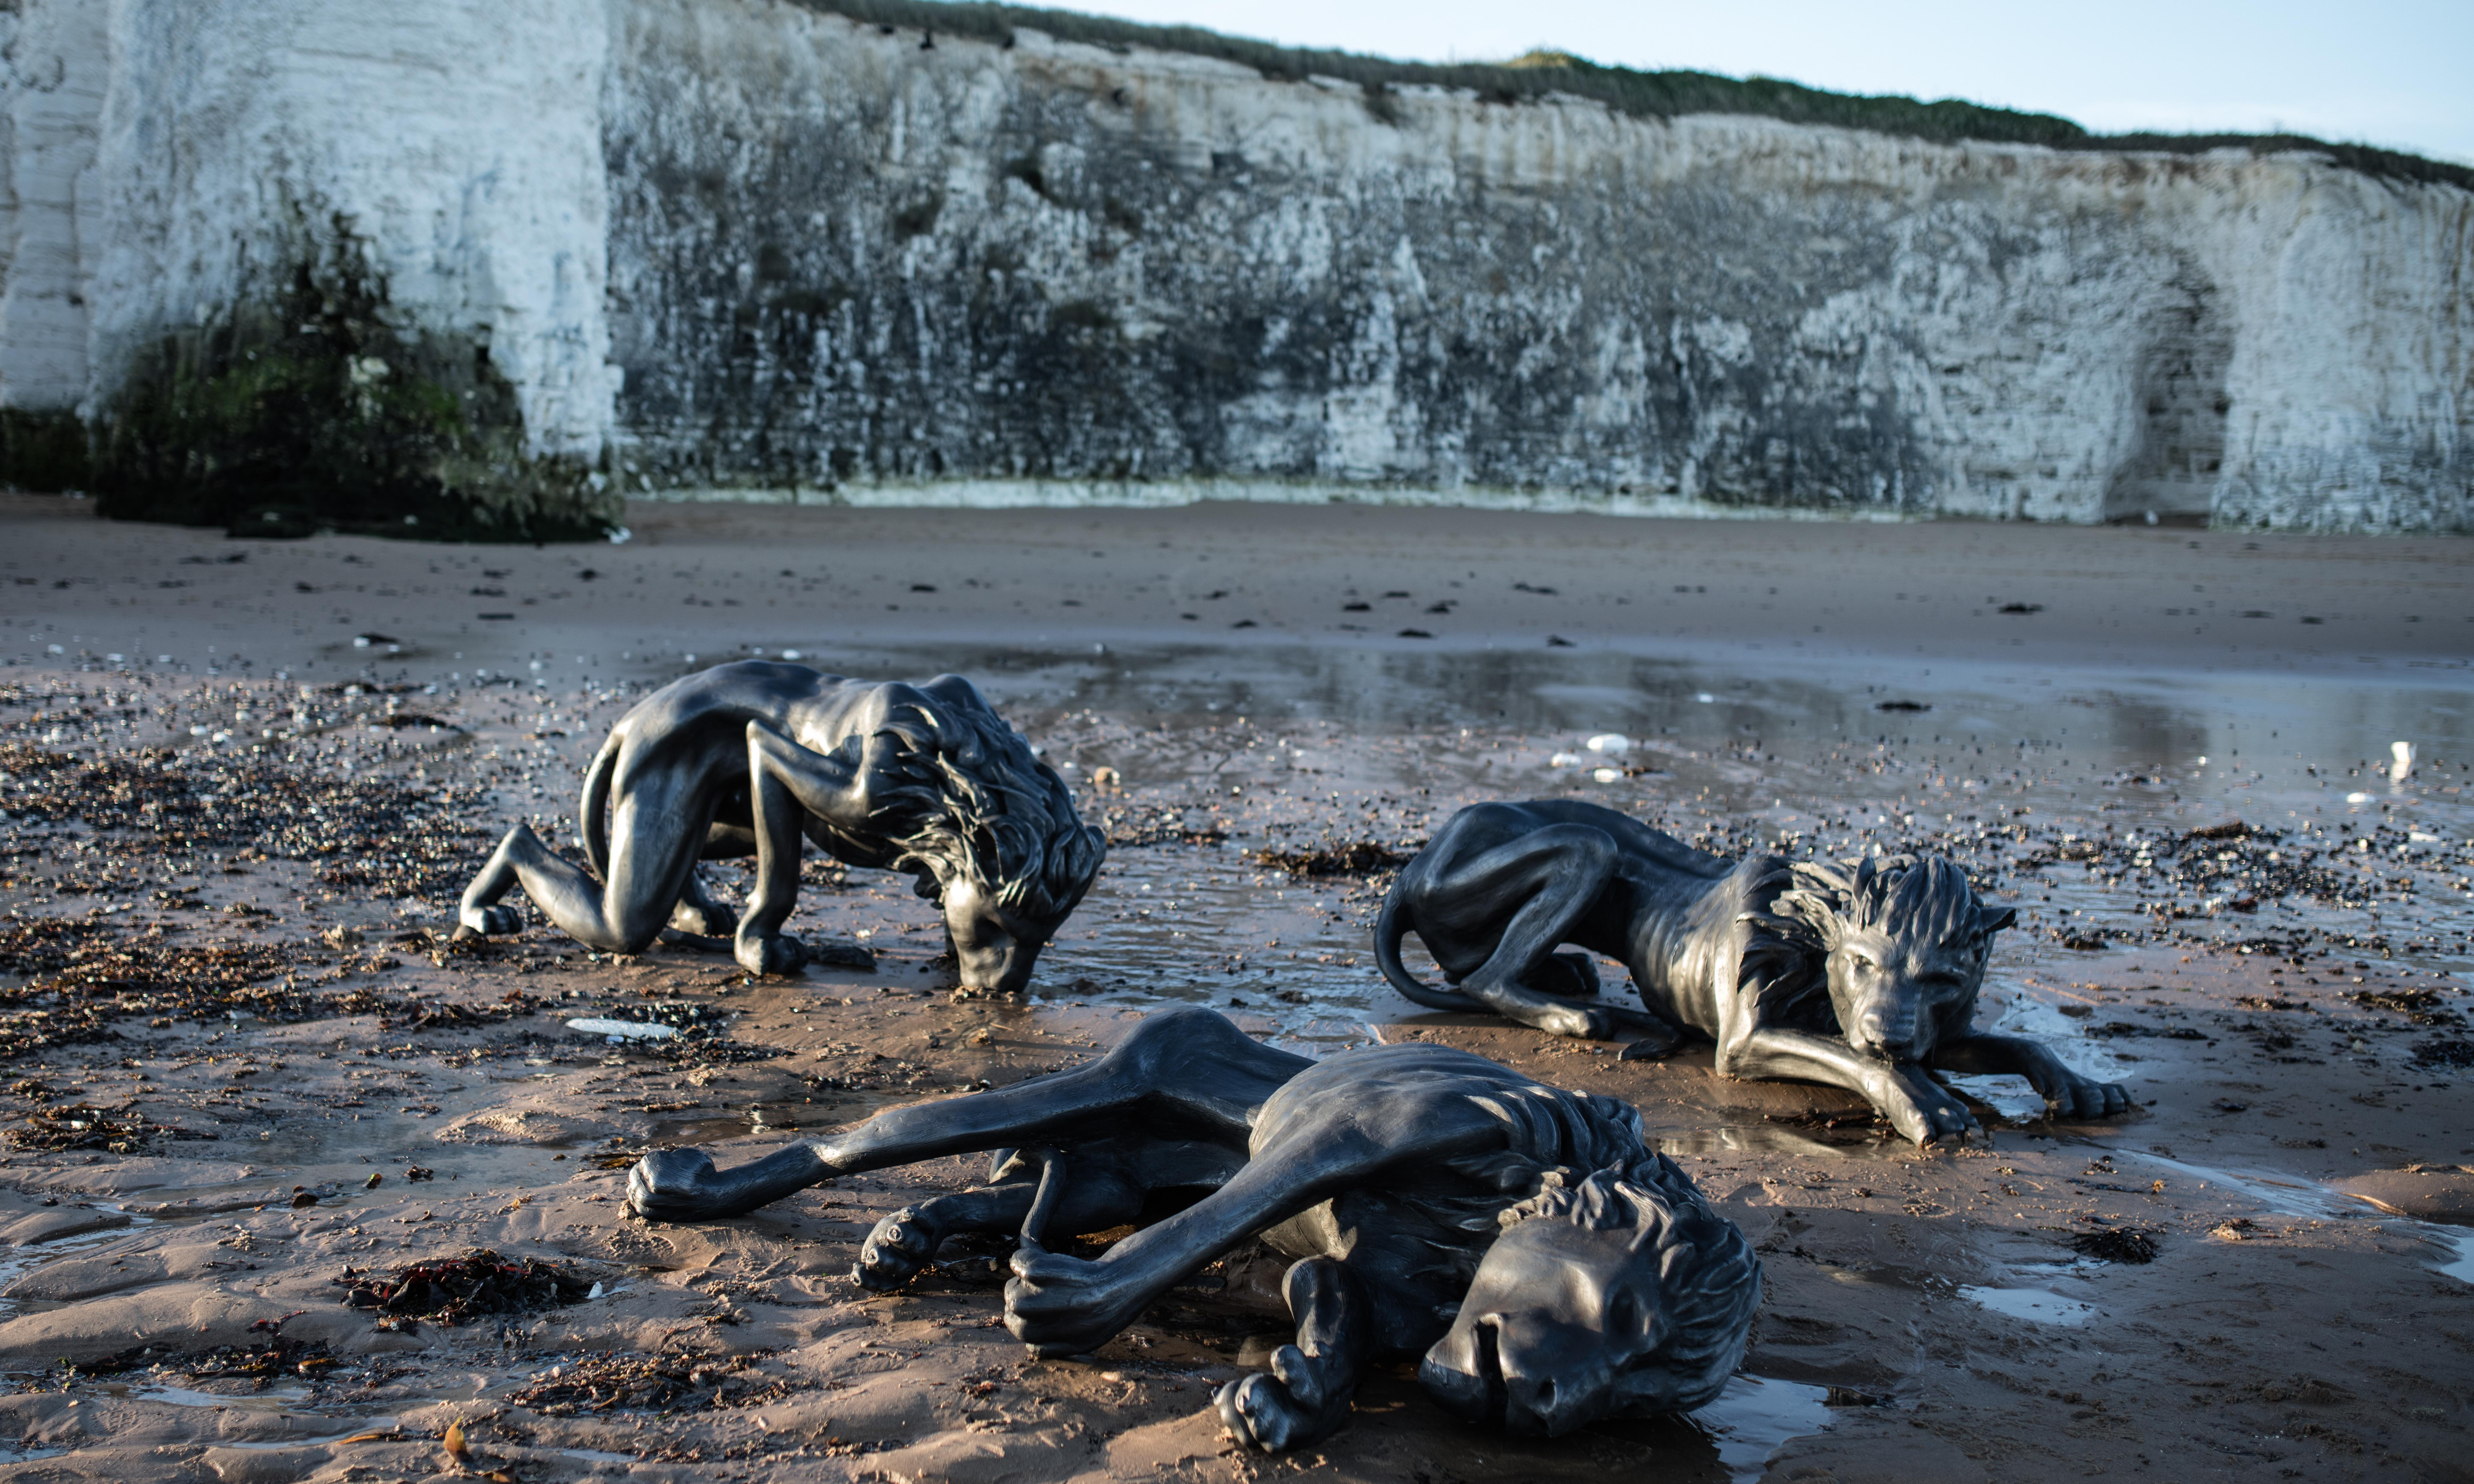 Three lions on a beach: a sculpture for the age of Brexit